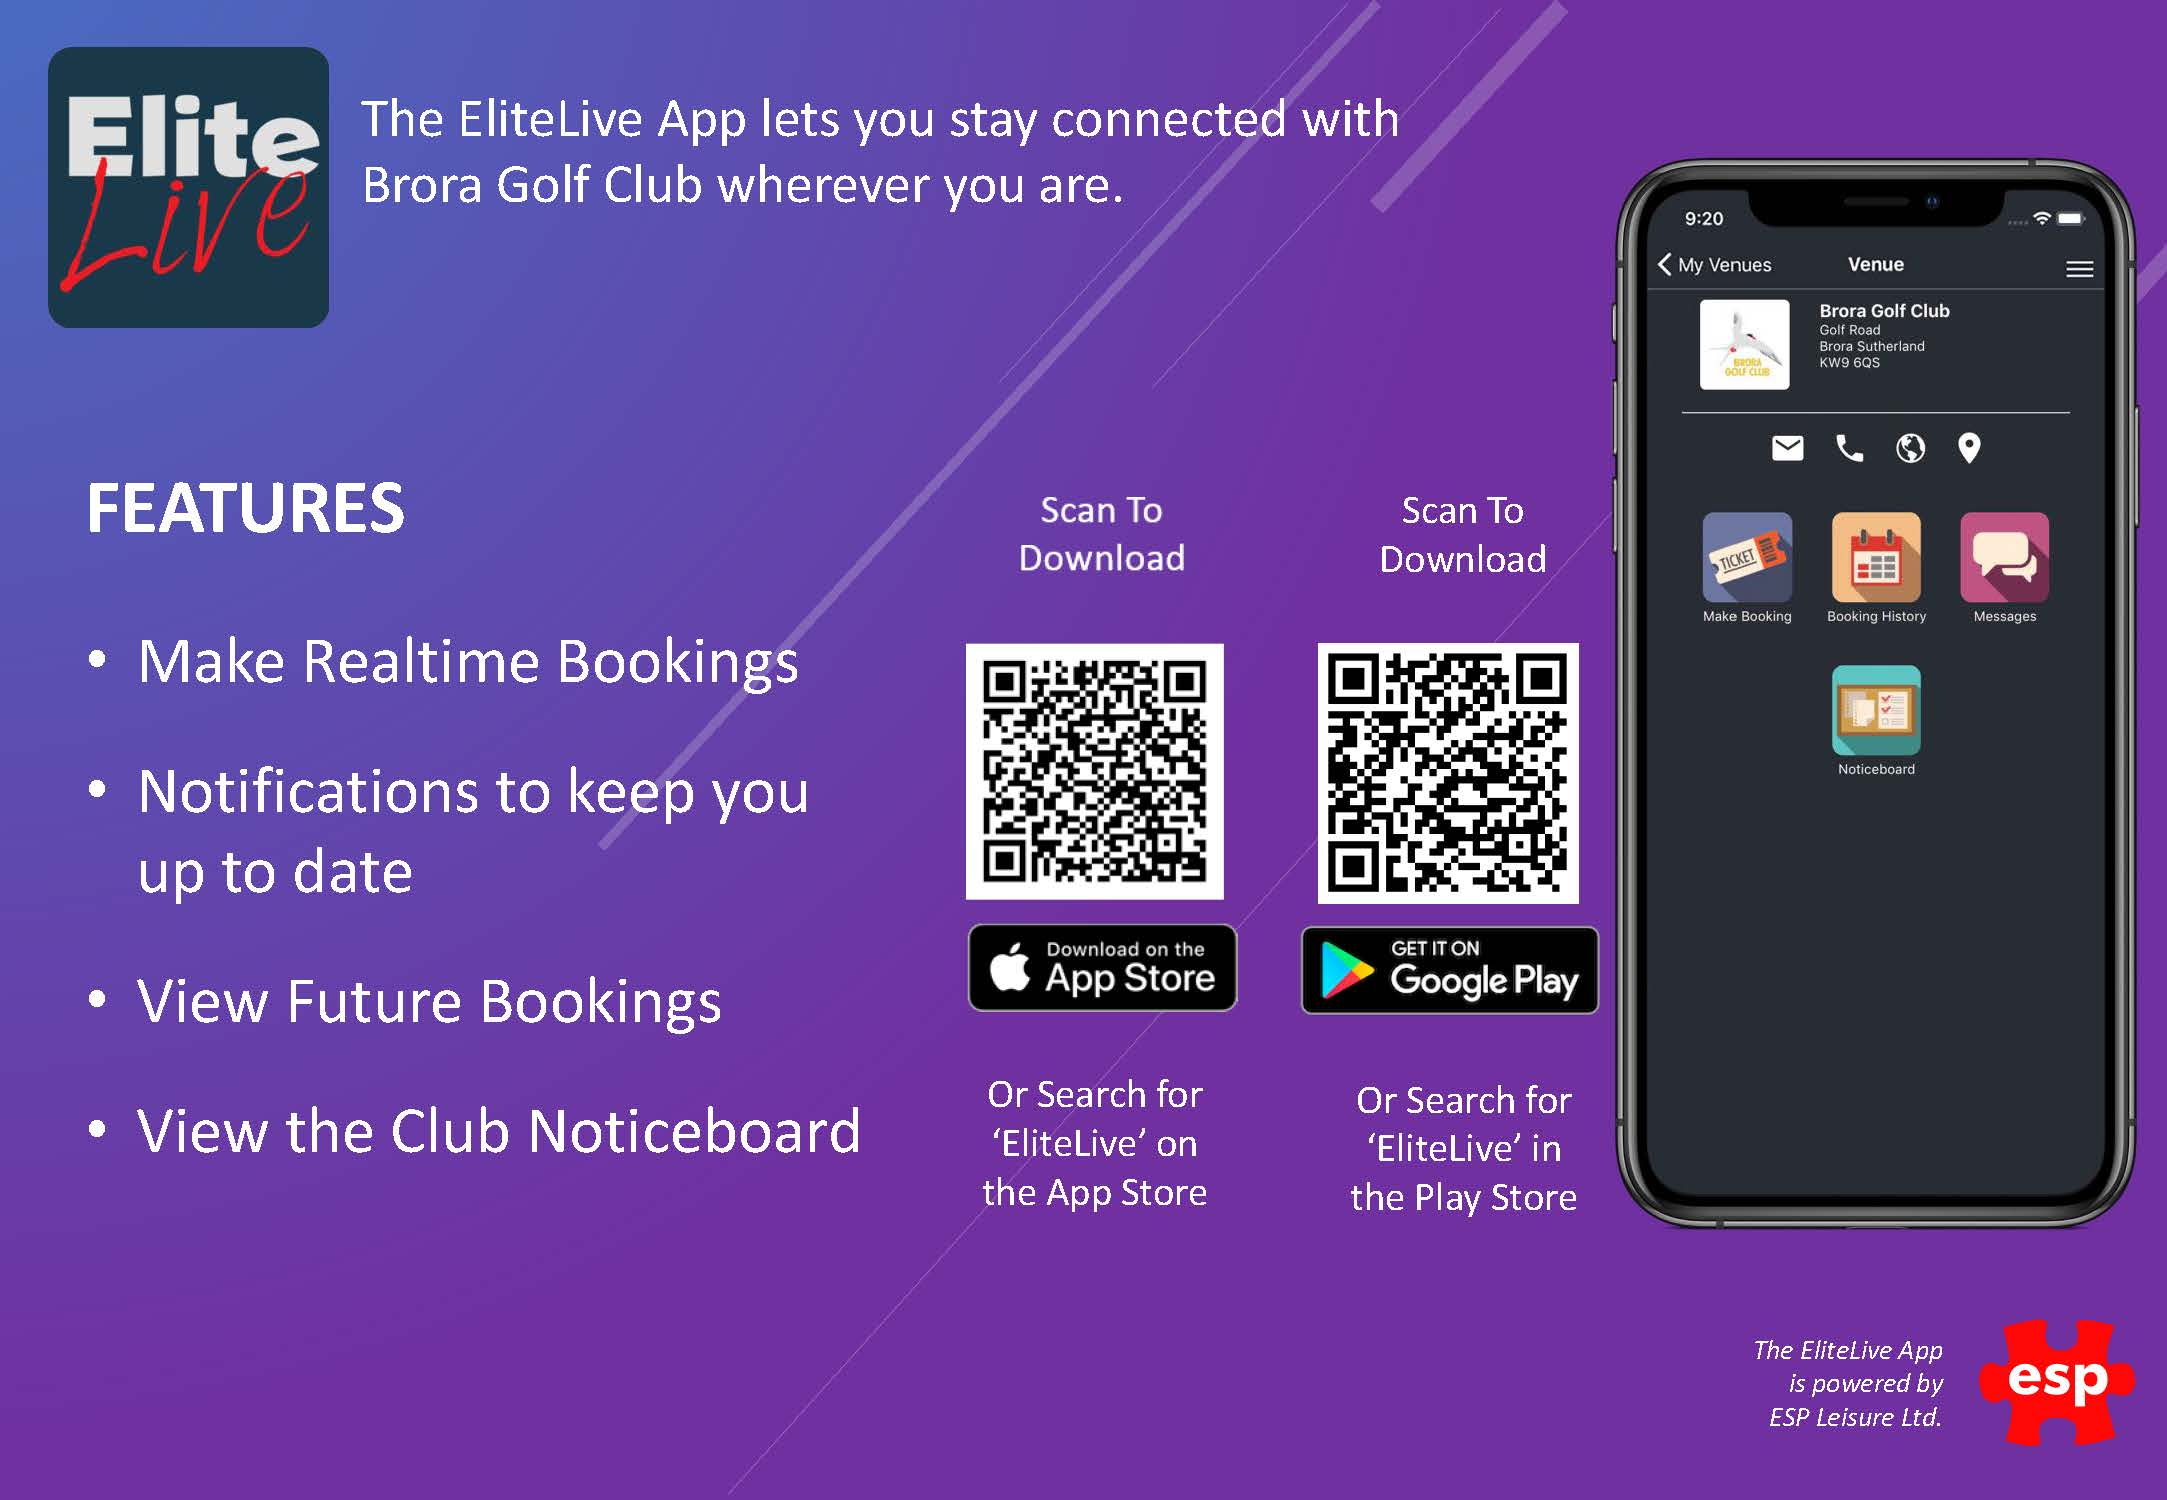 EliteLive App Adoption Flyer Brora